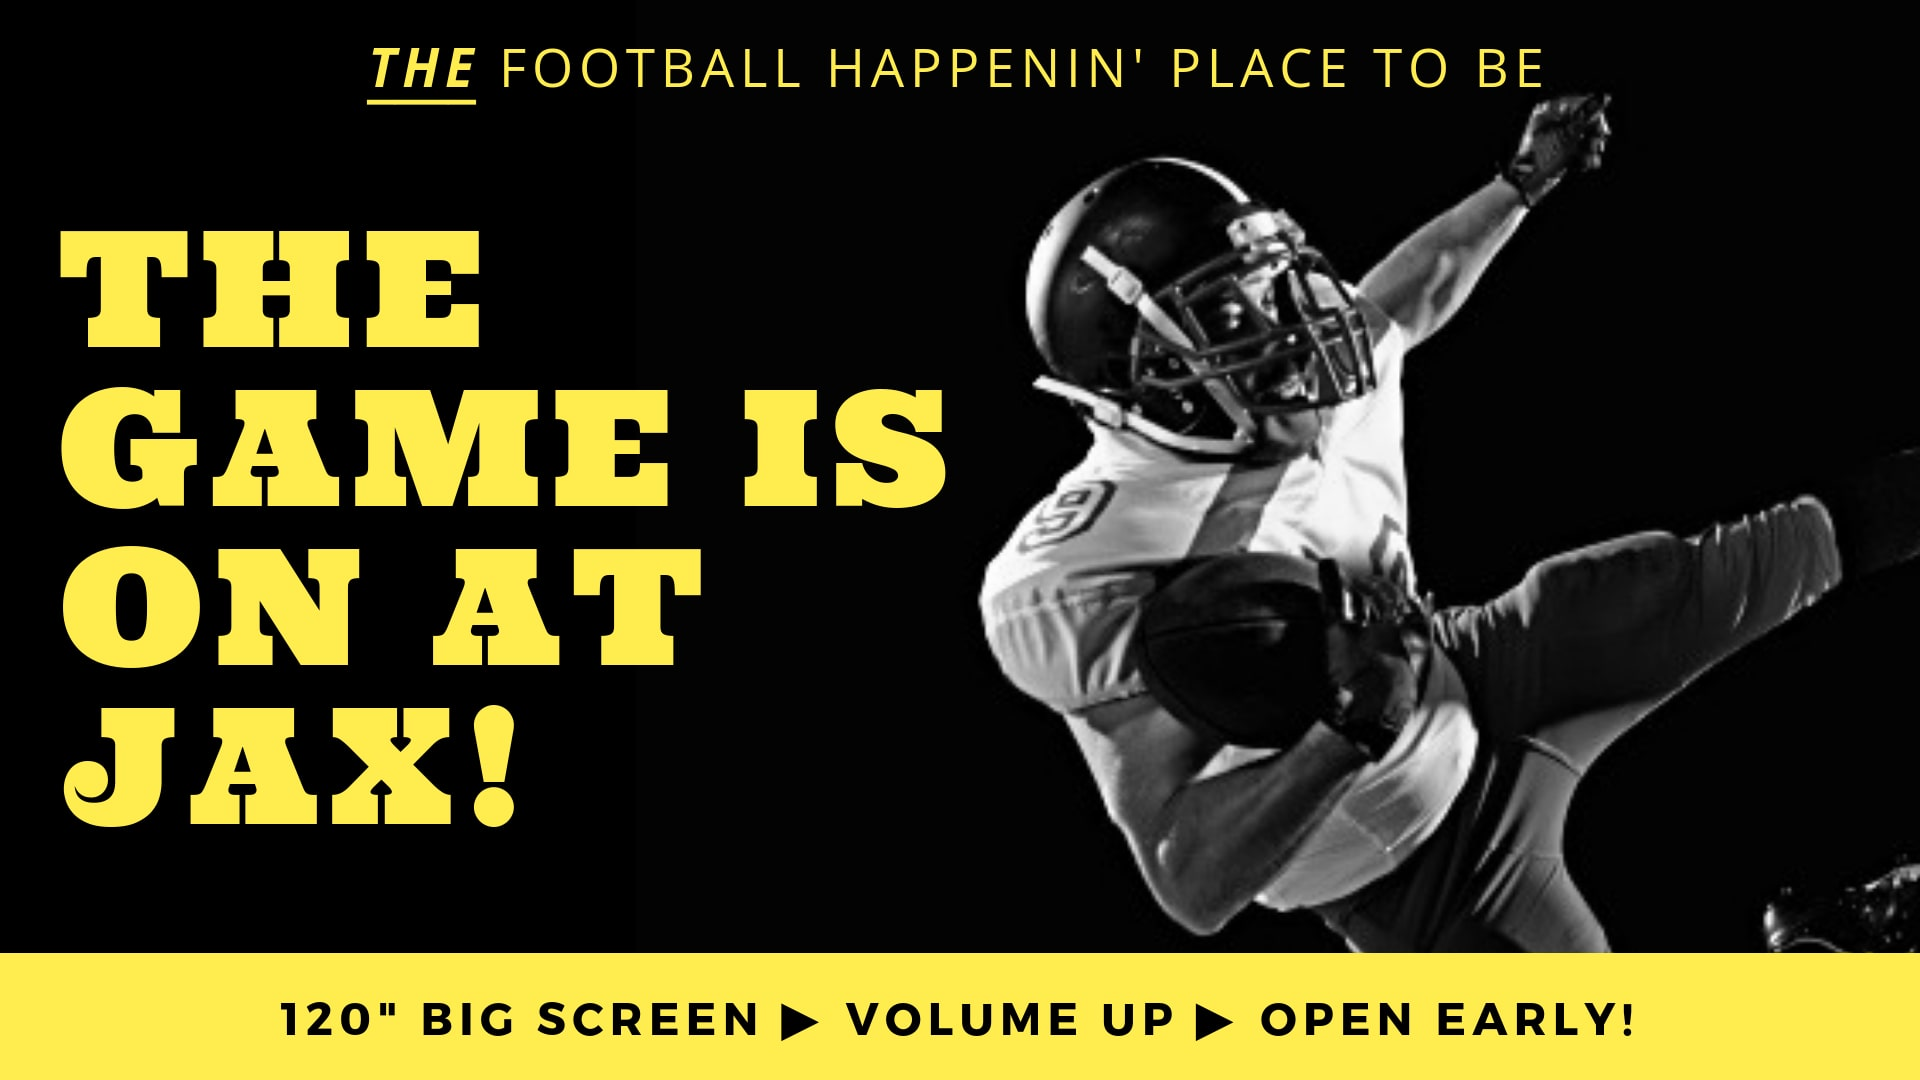 January 20 | BIG SCREEN NFL PLAYOFFS